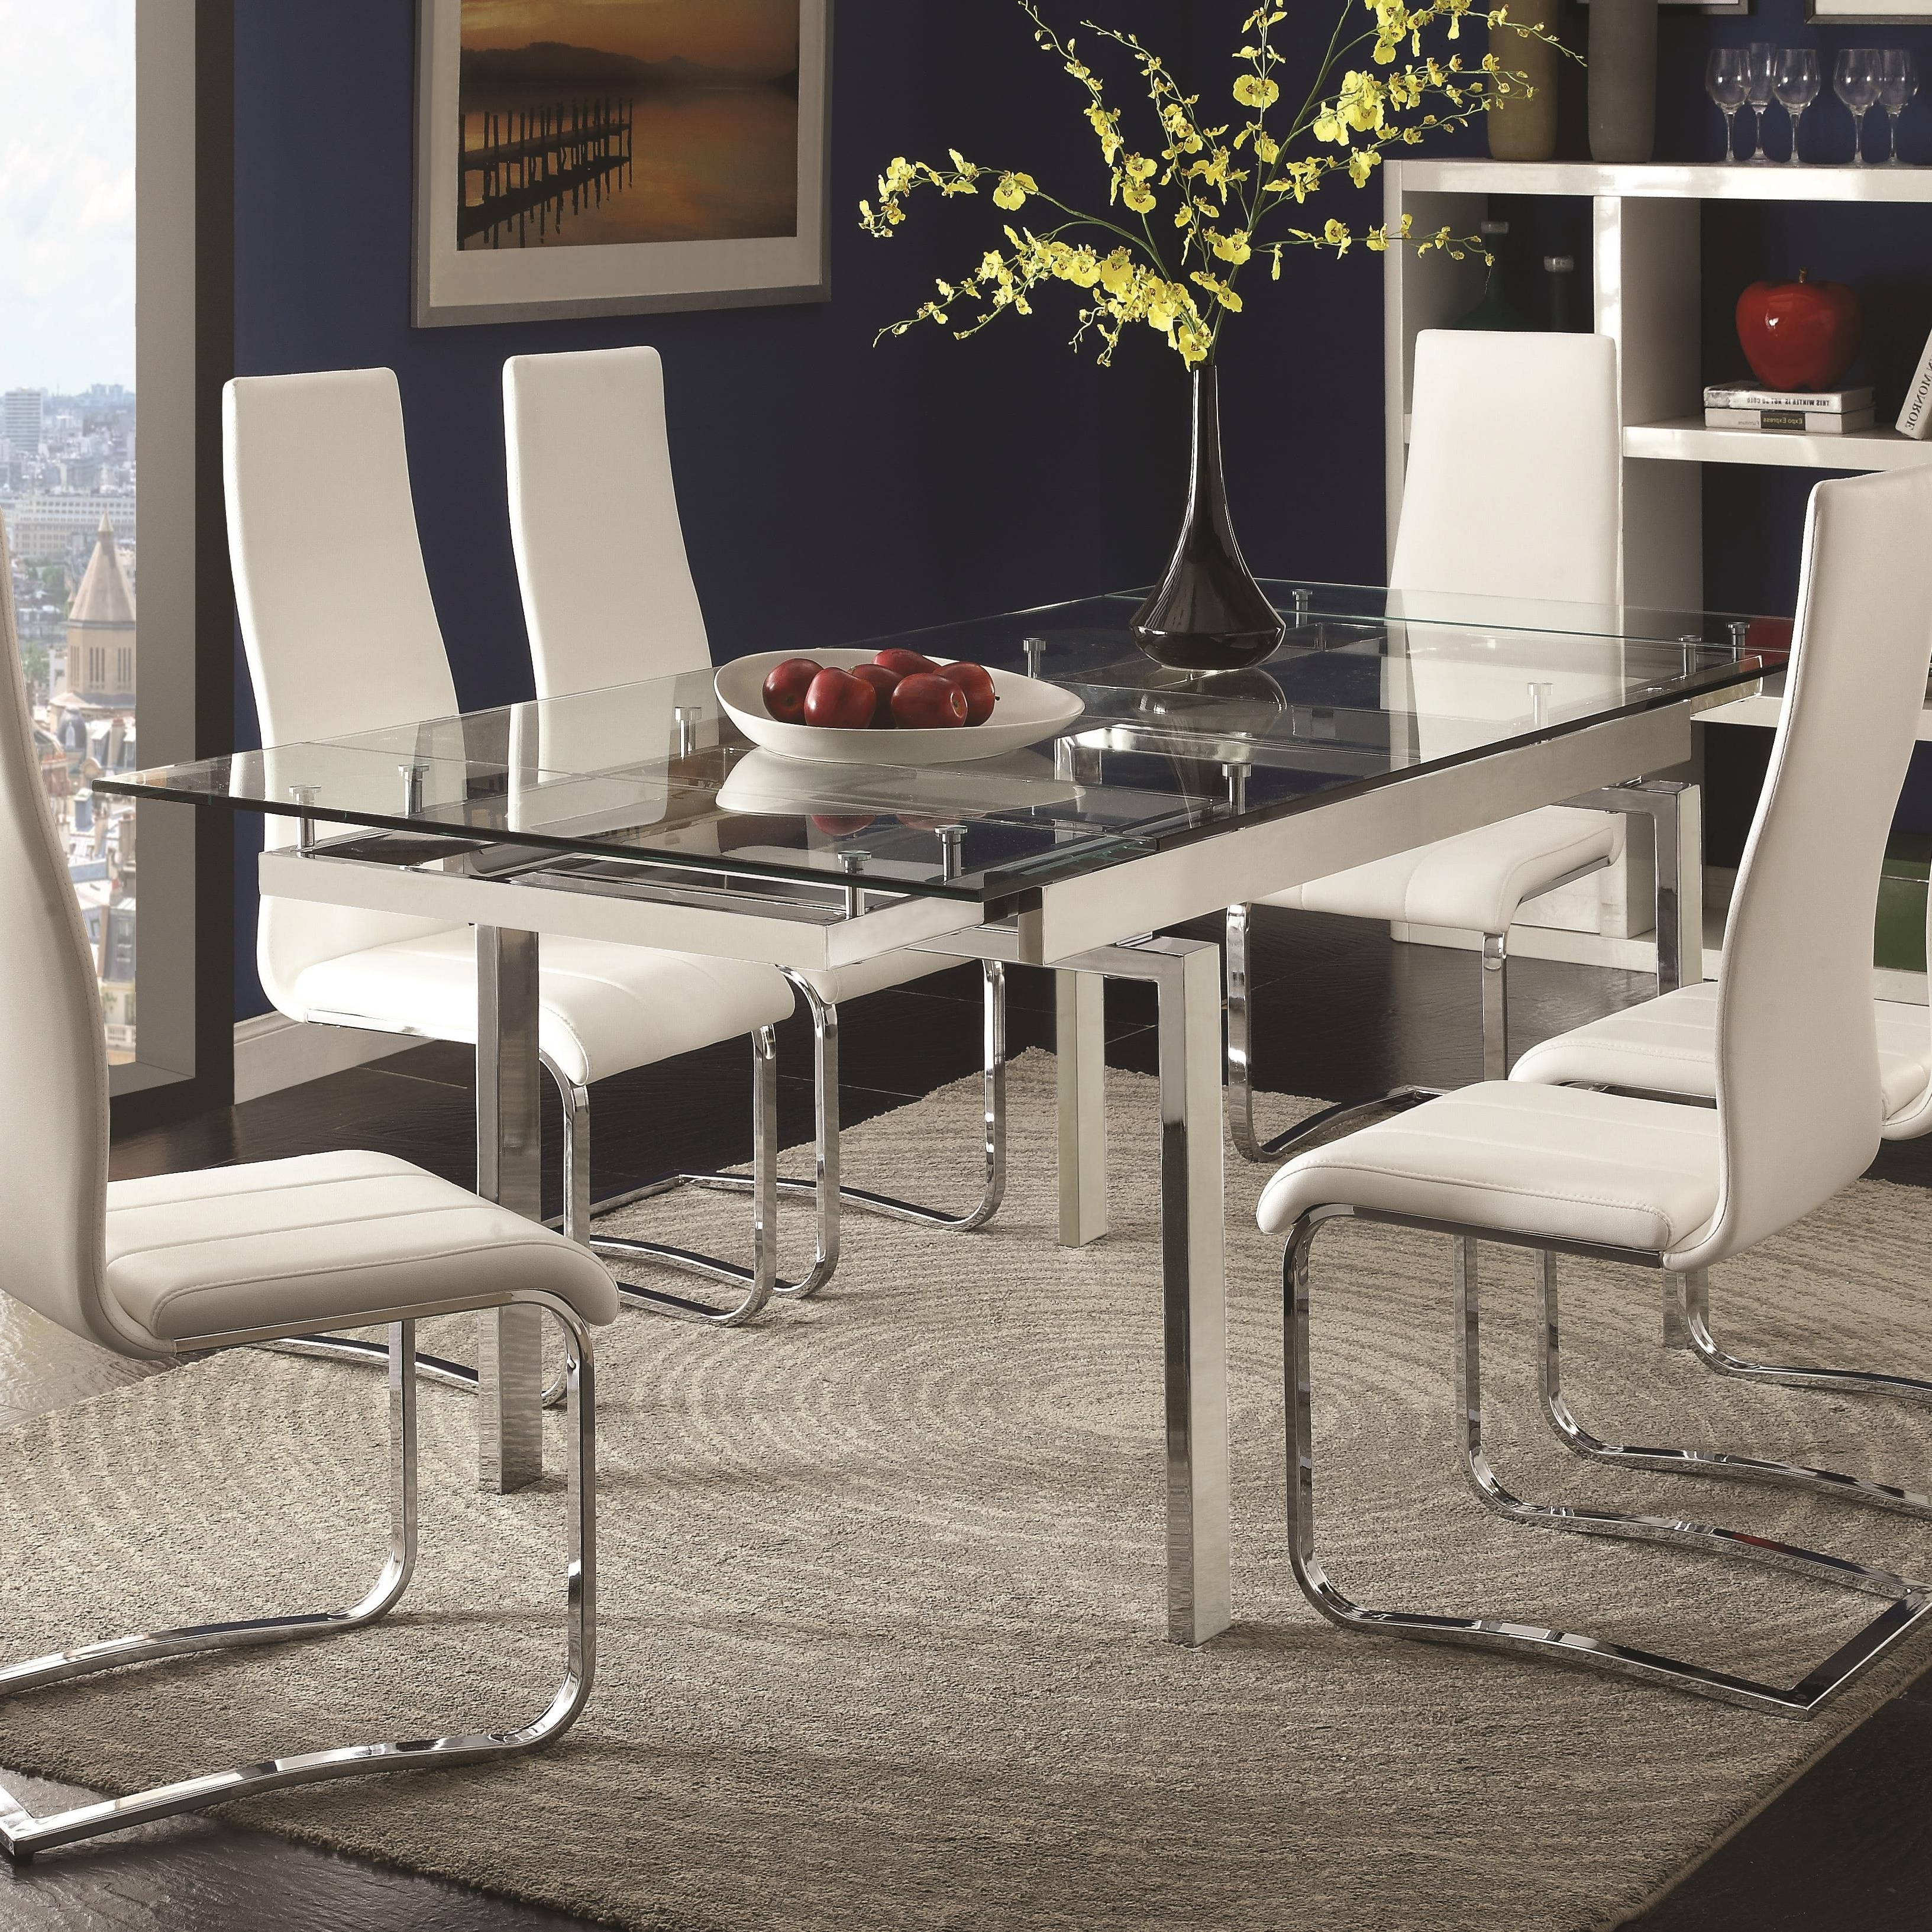 Modern Dining Room Furniture Intended For Best And Newest Coaster Modern Dining Contemporary Glass Dining Table With Leaves (View 14 of 25)